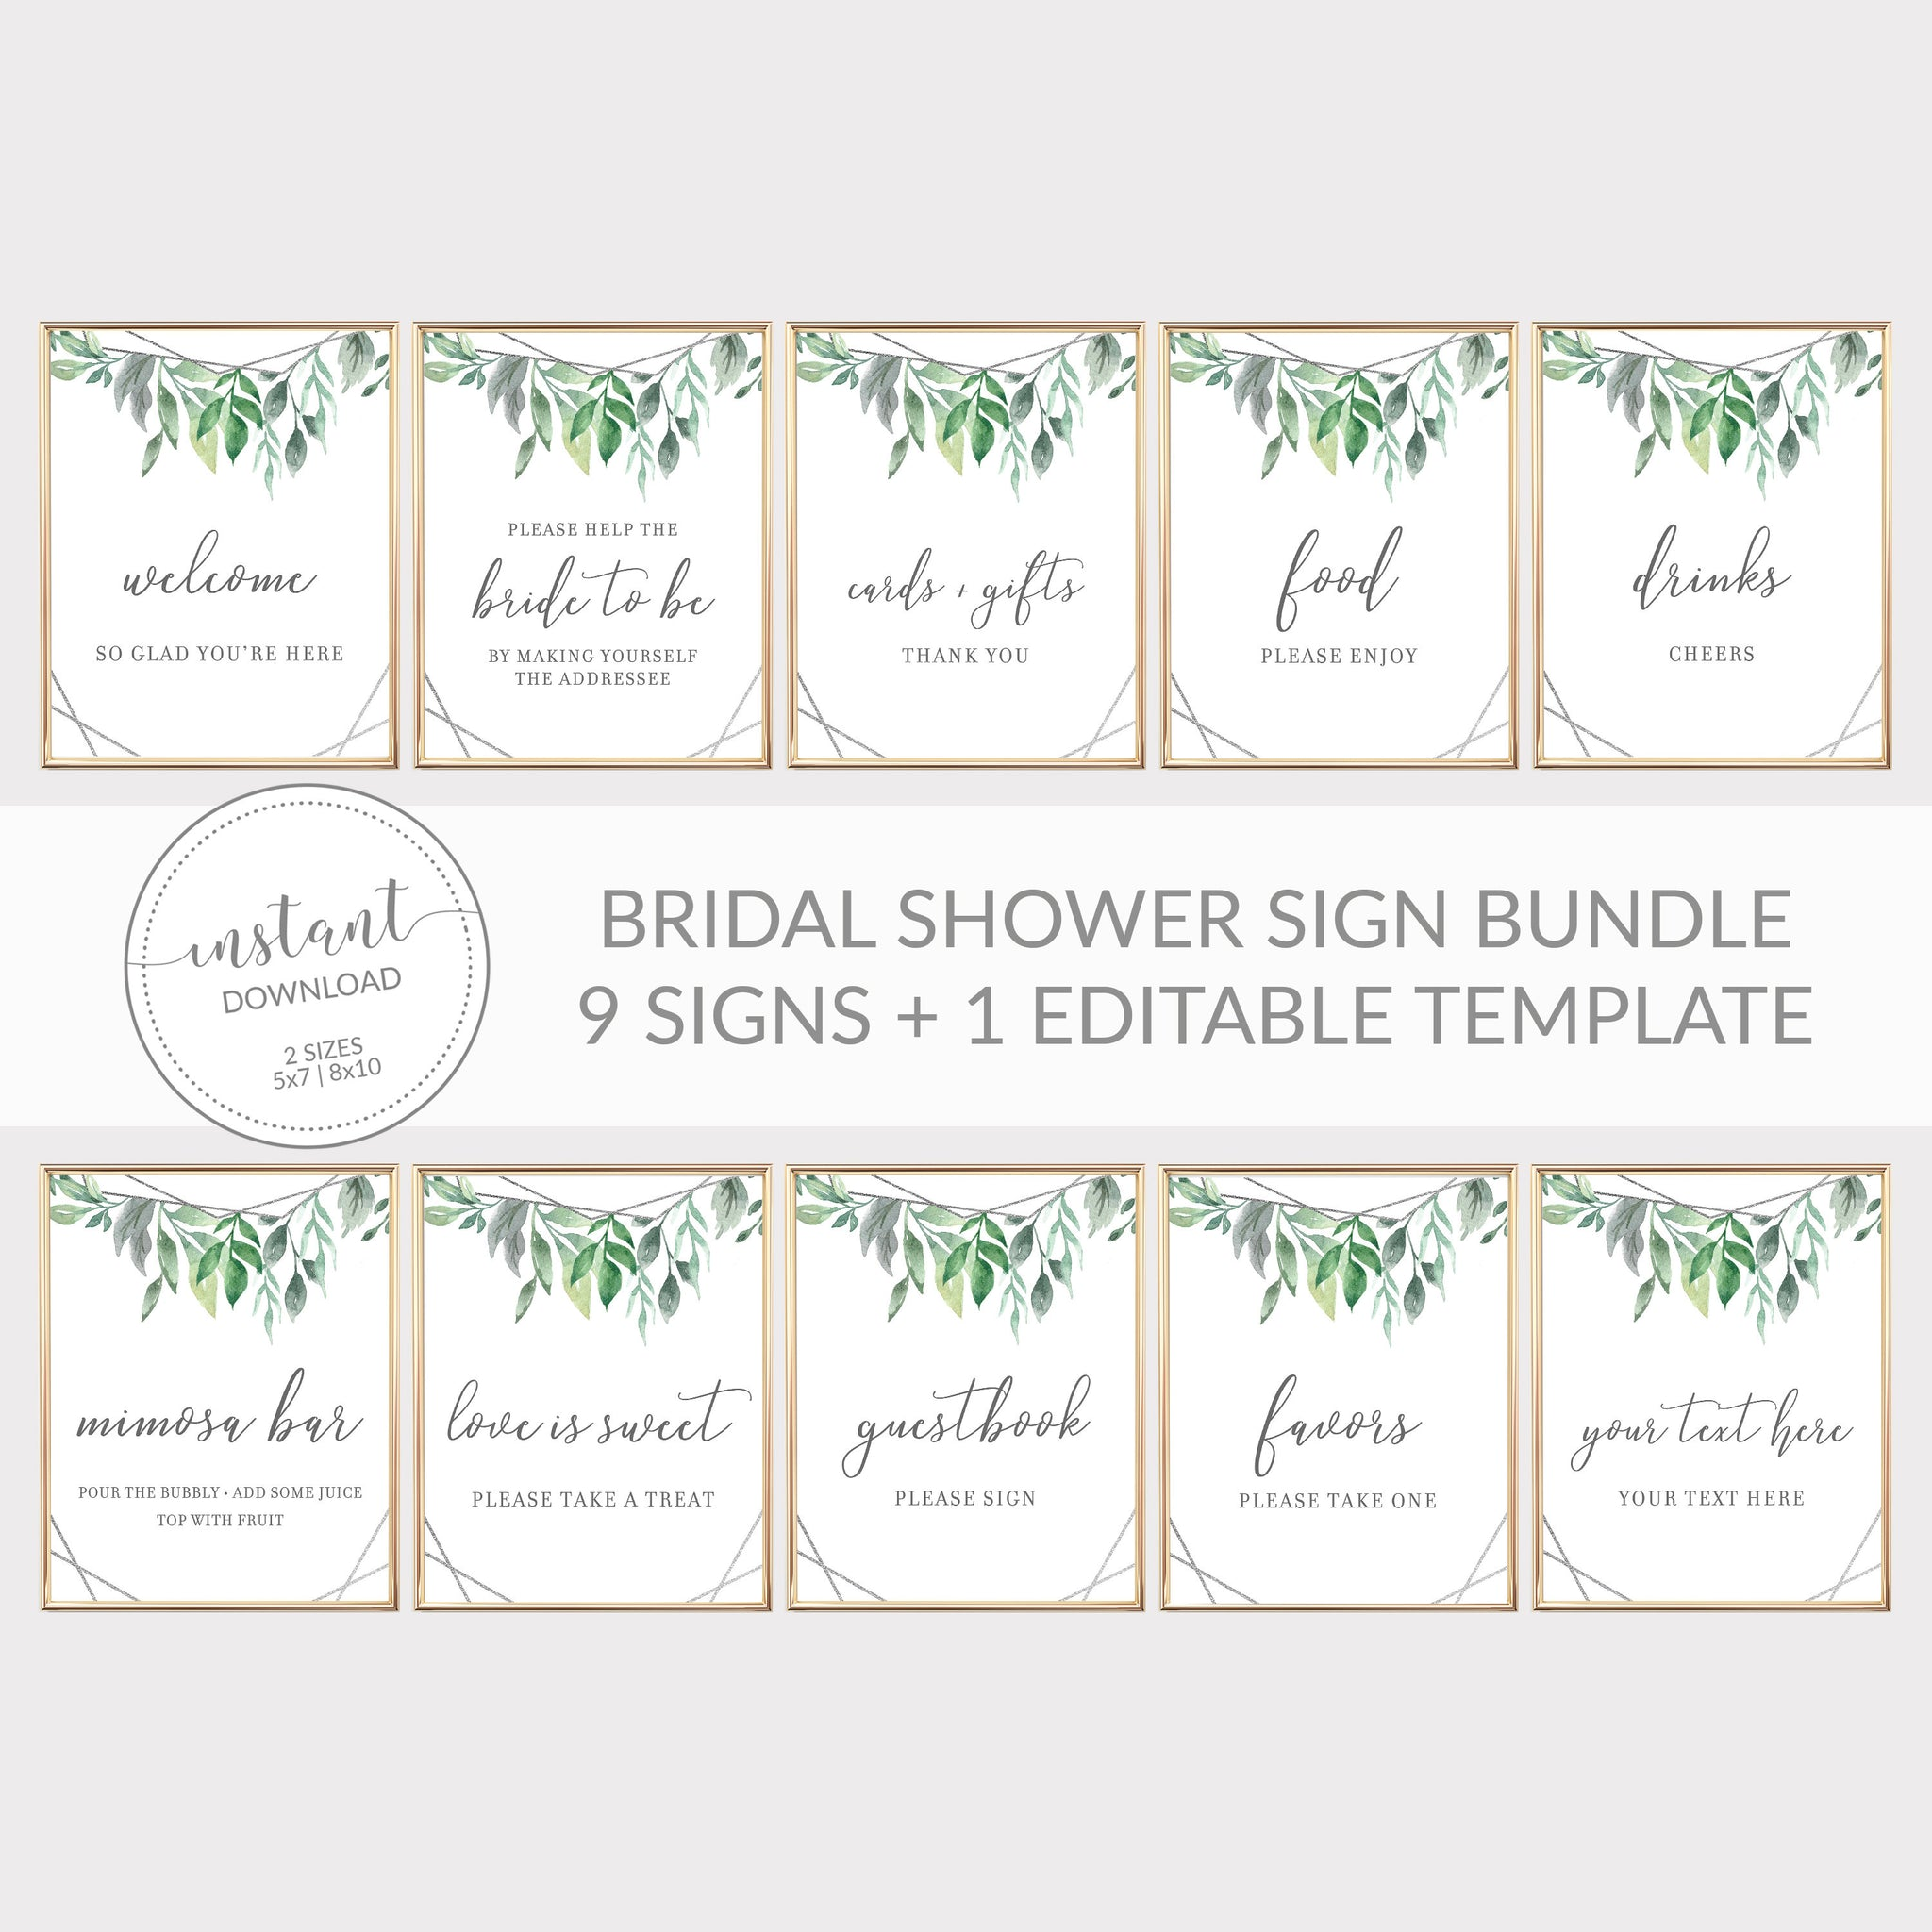 Geometric Silver Greenery Printable Bridal Shower Sign Bundle, INSTANT DOWNLOAD, Editable Bridal Shower Sign, Decorations Supplies - GFS100 - @PlumPolkaDot